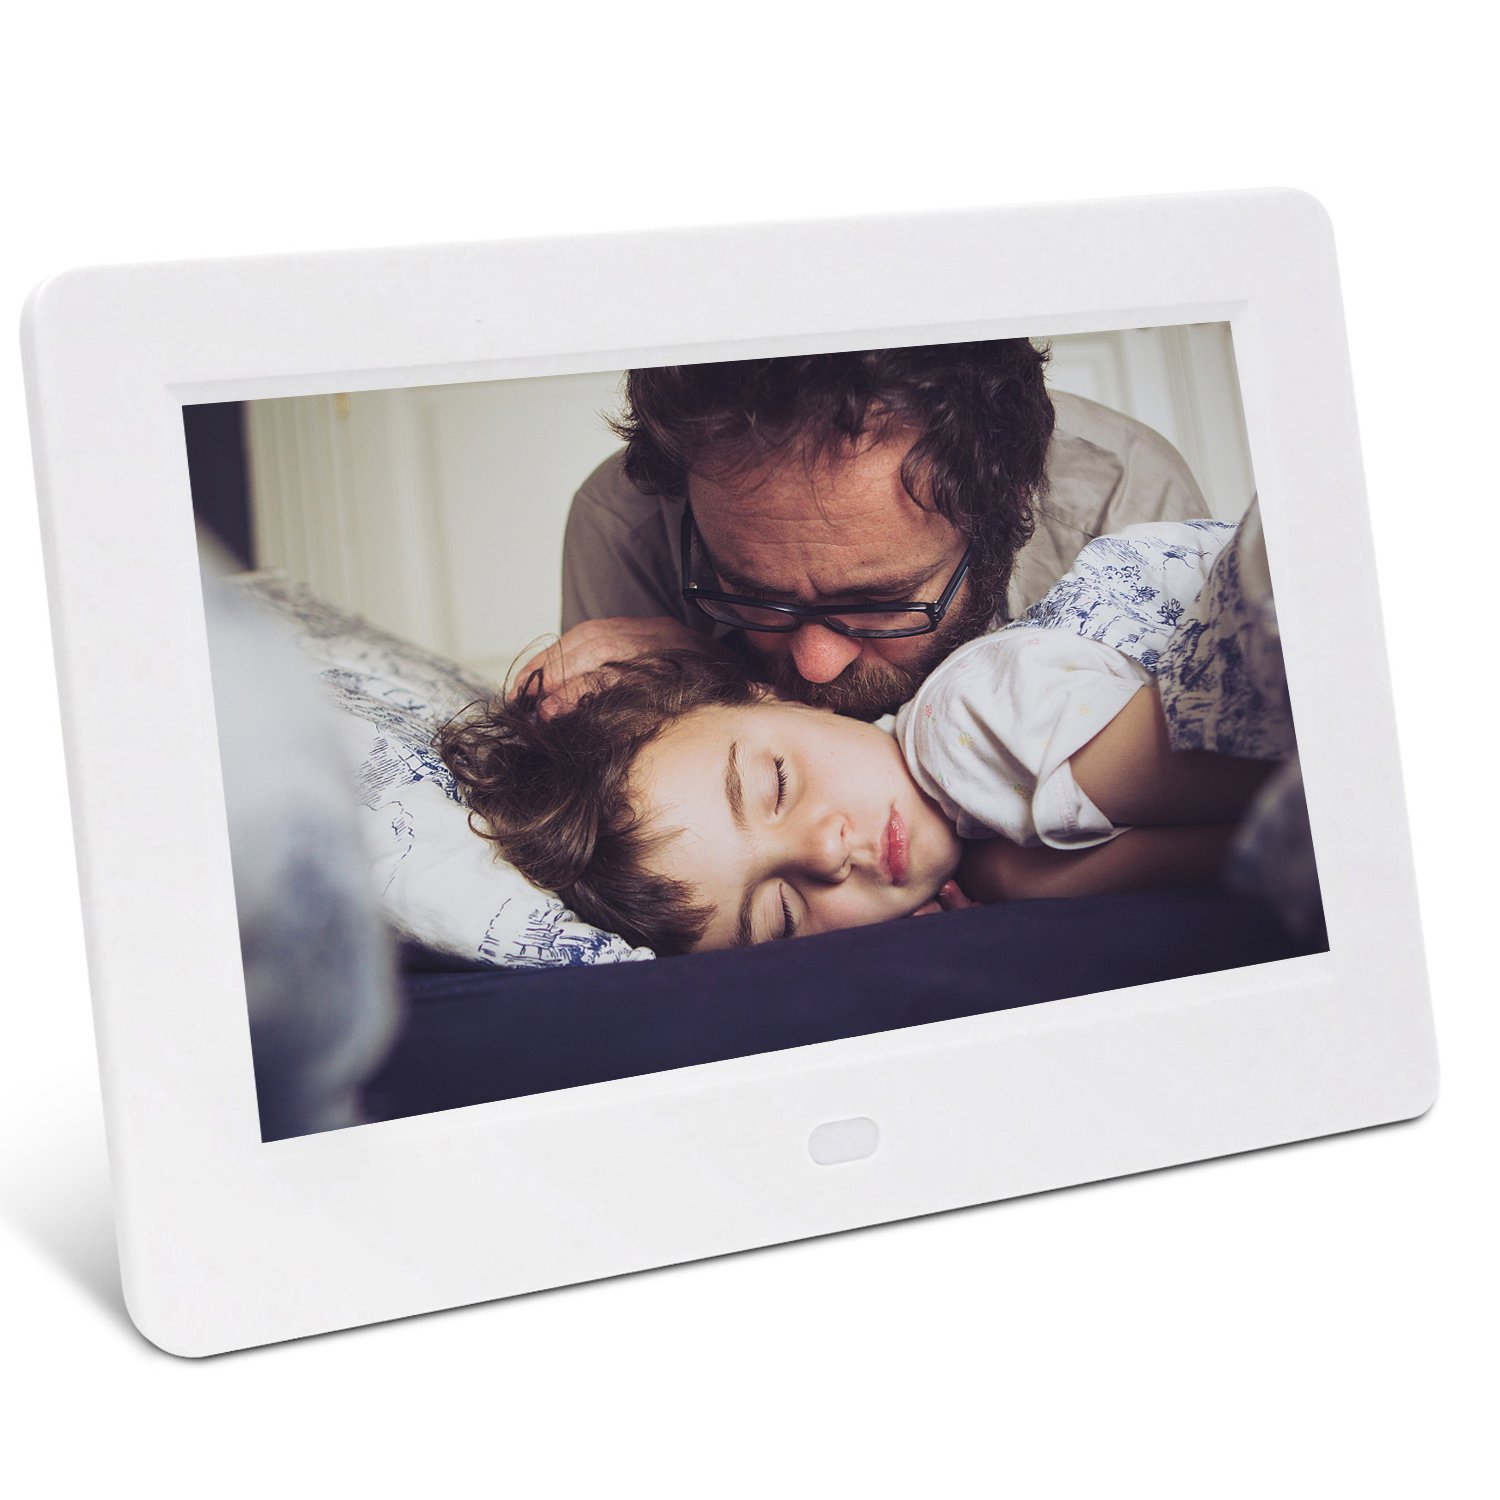 Digital Picture Frame, YENOCK 7 Inch Digital Frame IPS Screen 1024x600 Pixels High Resolution Photo/Music/HD Video Player/Calendar/Alarm Advertising Player With Remote Control